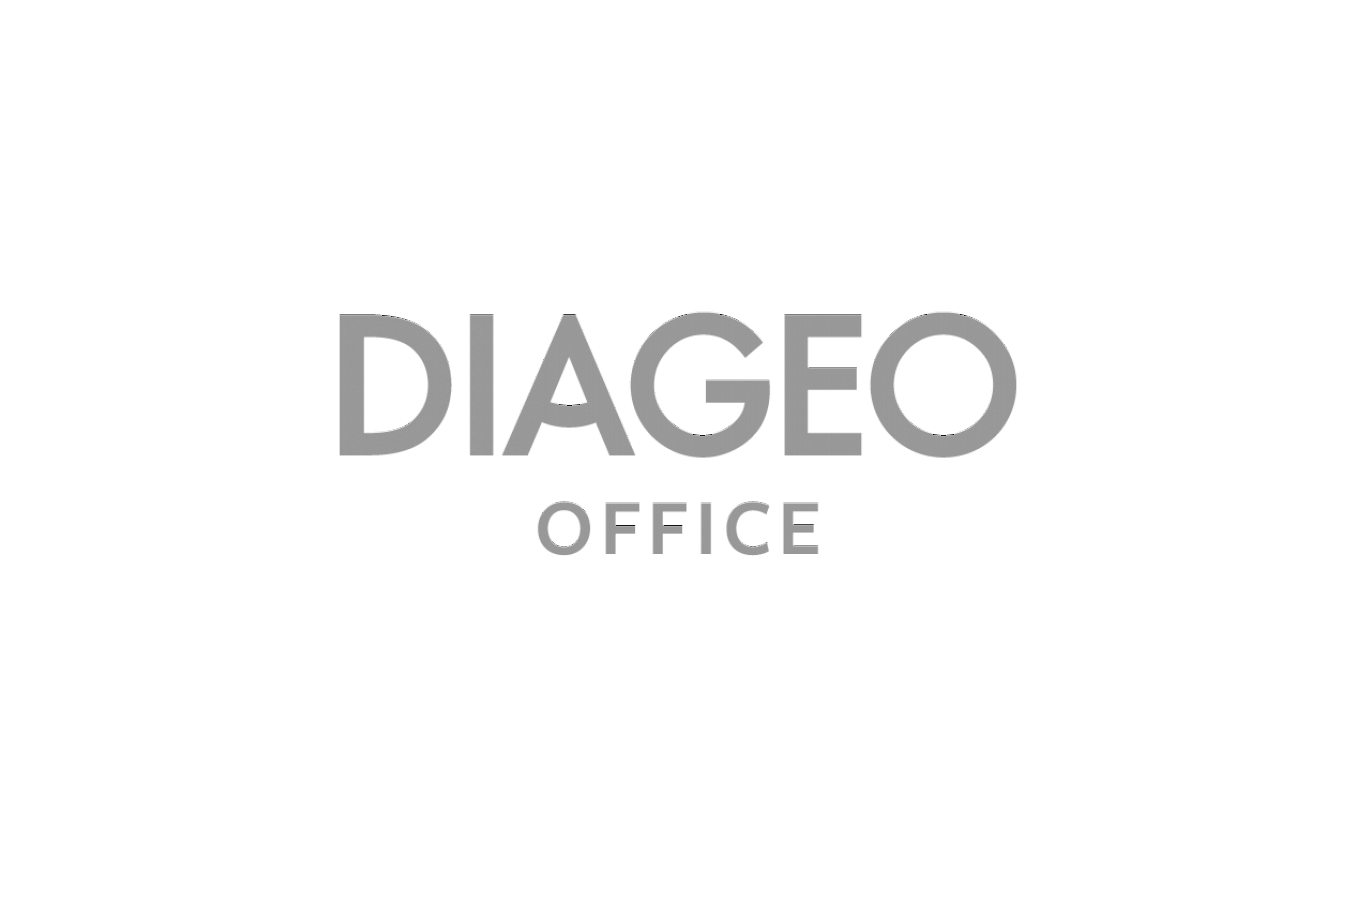 Diageo Office